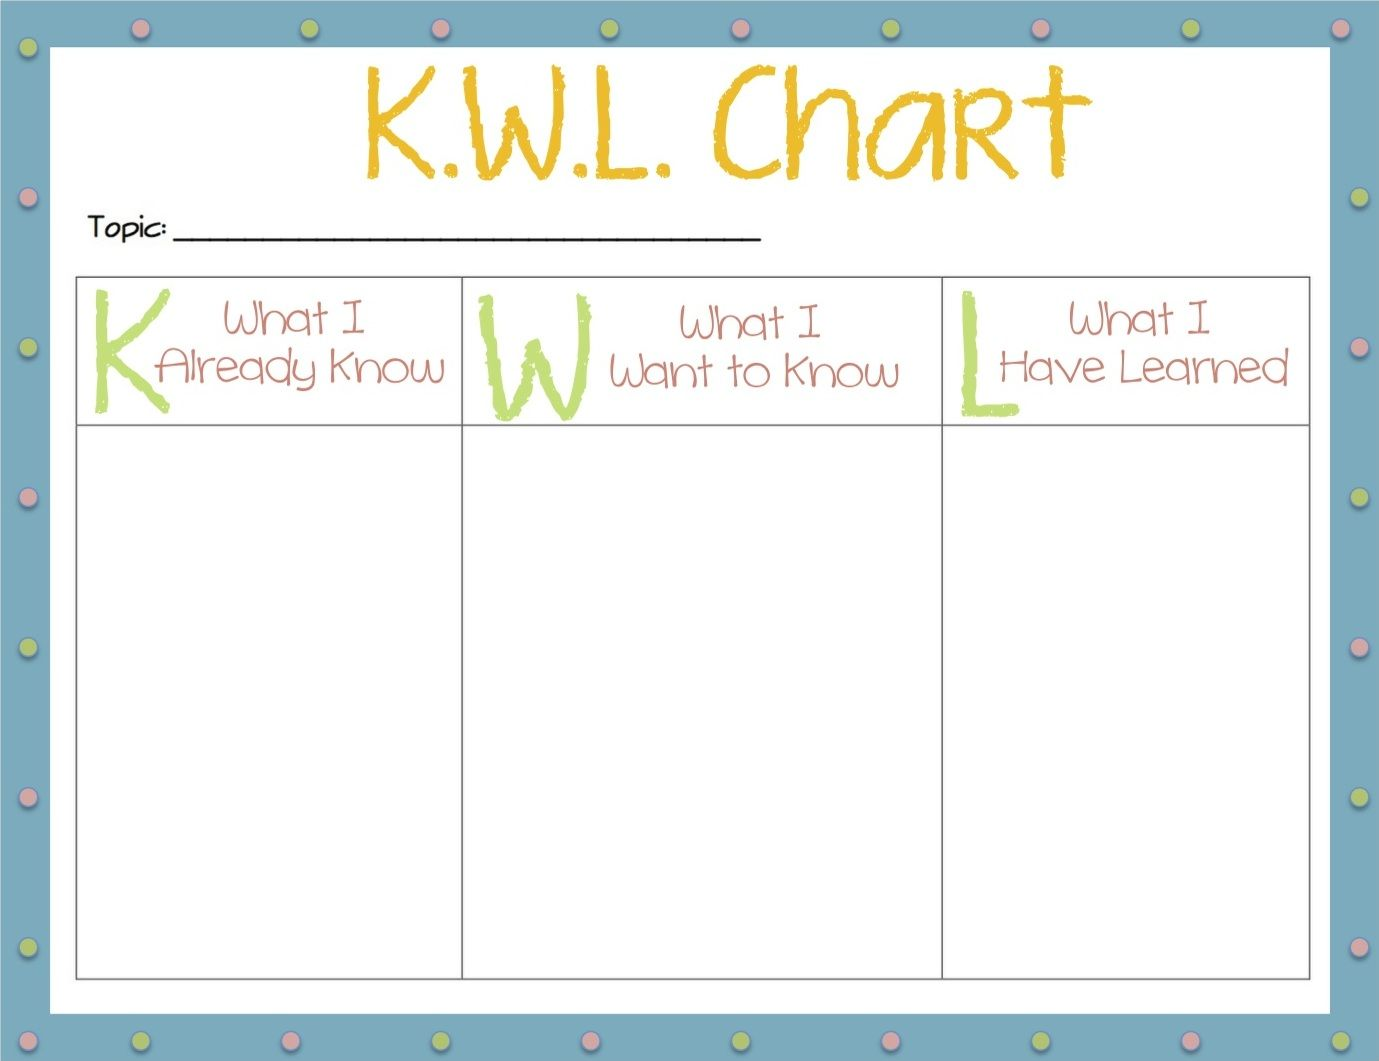 KWL Chart  Ed Ideas    Chart Teaching Ideas And